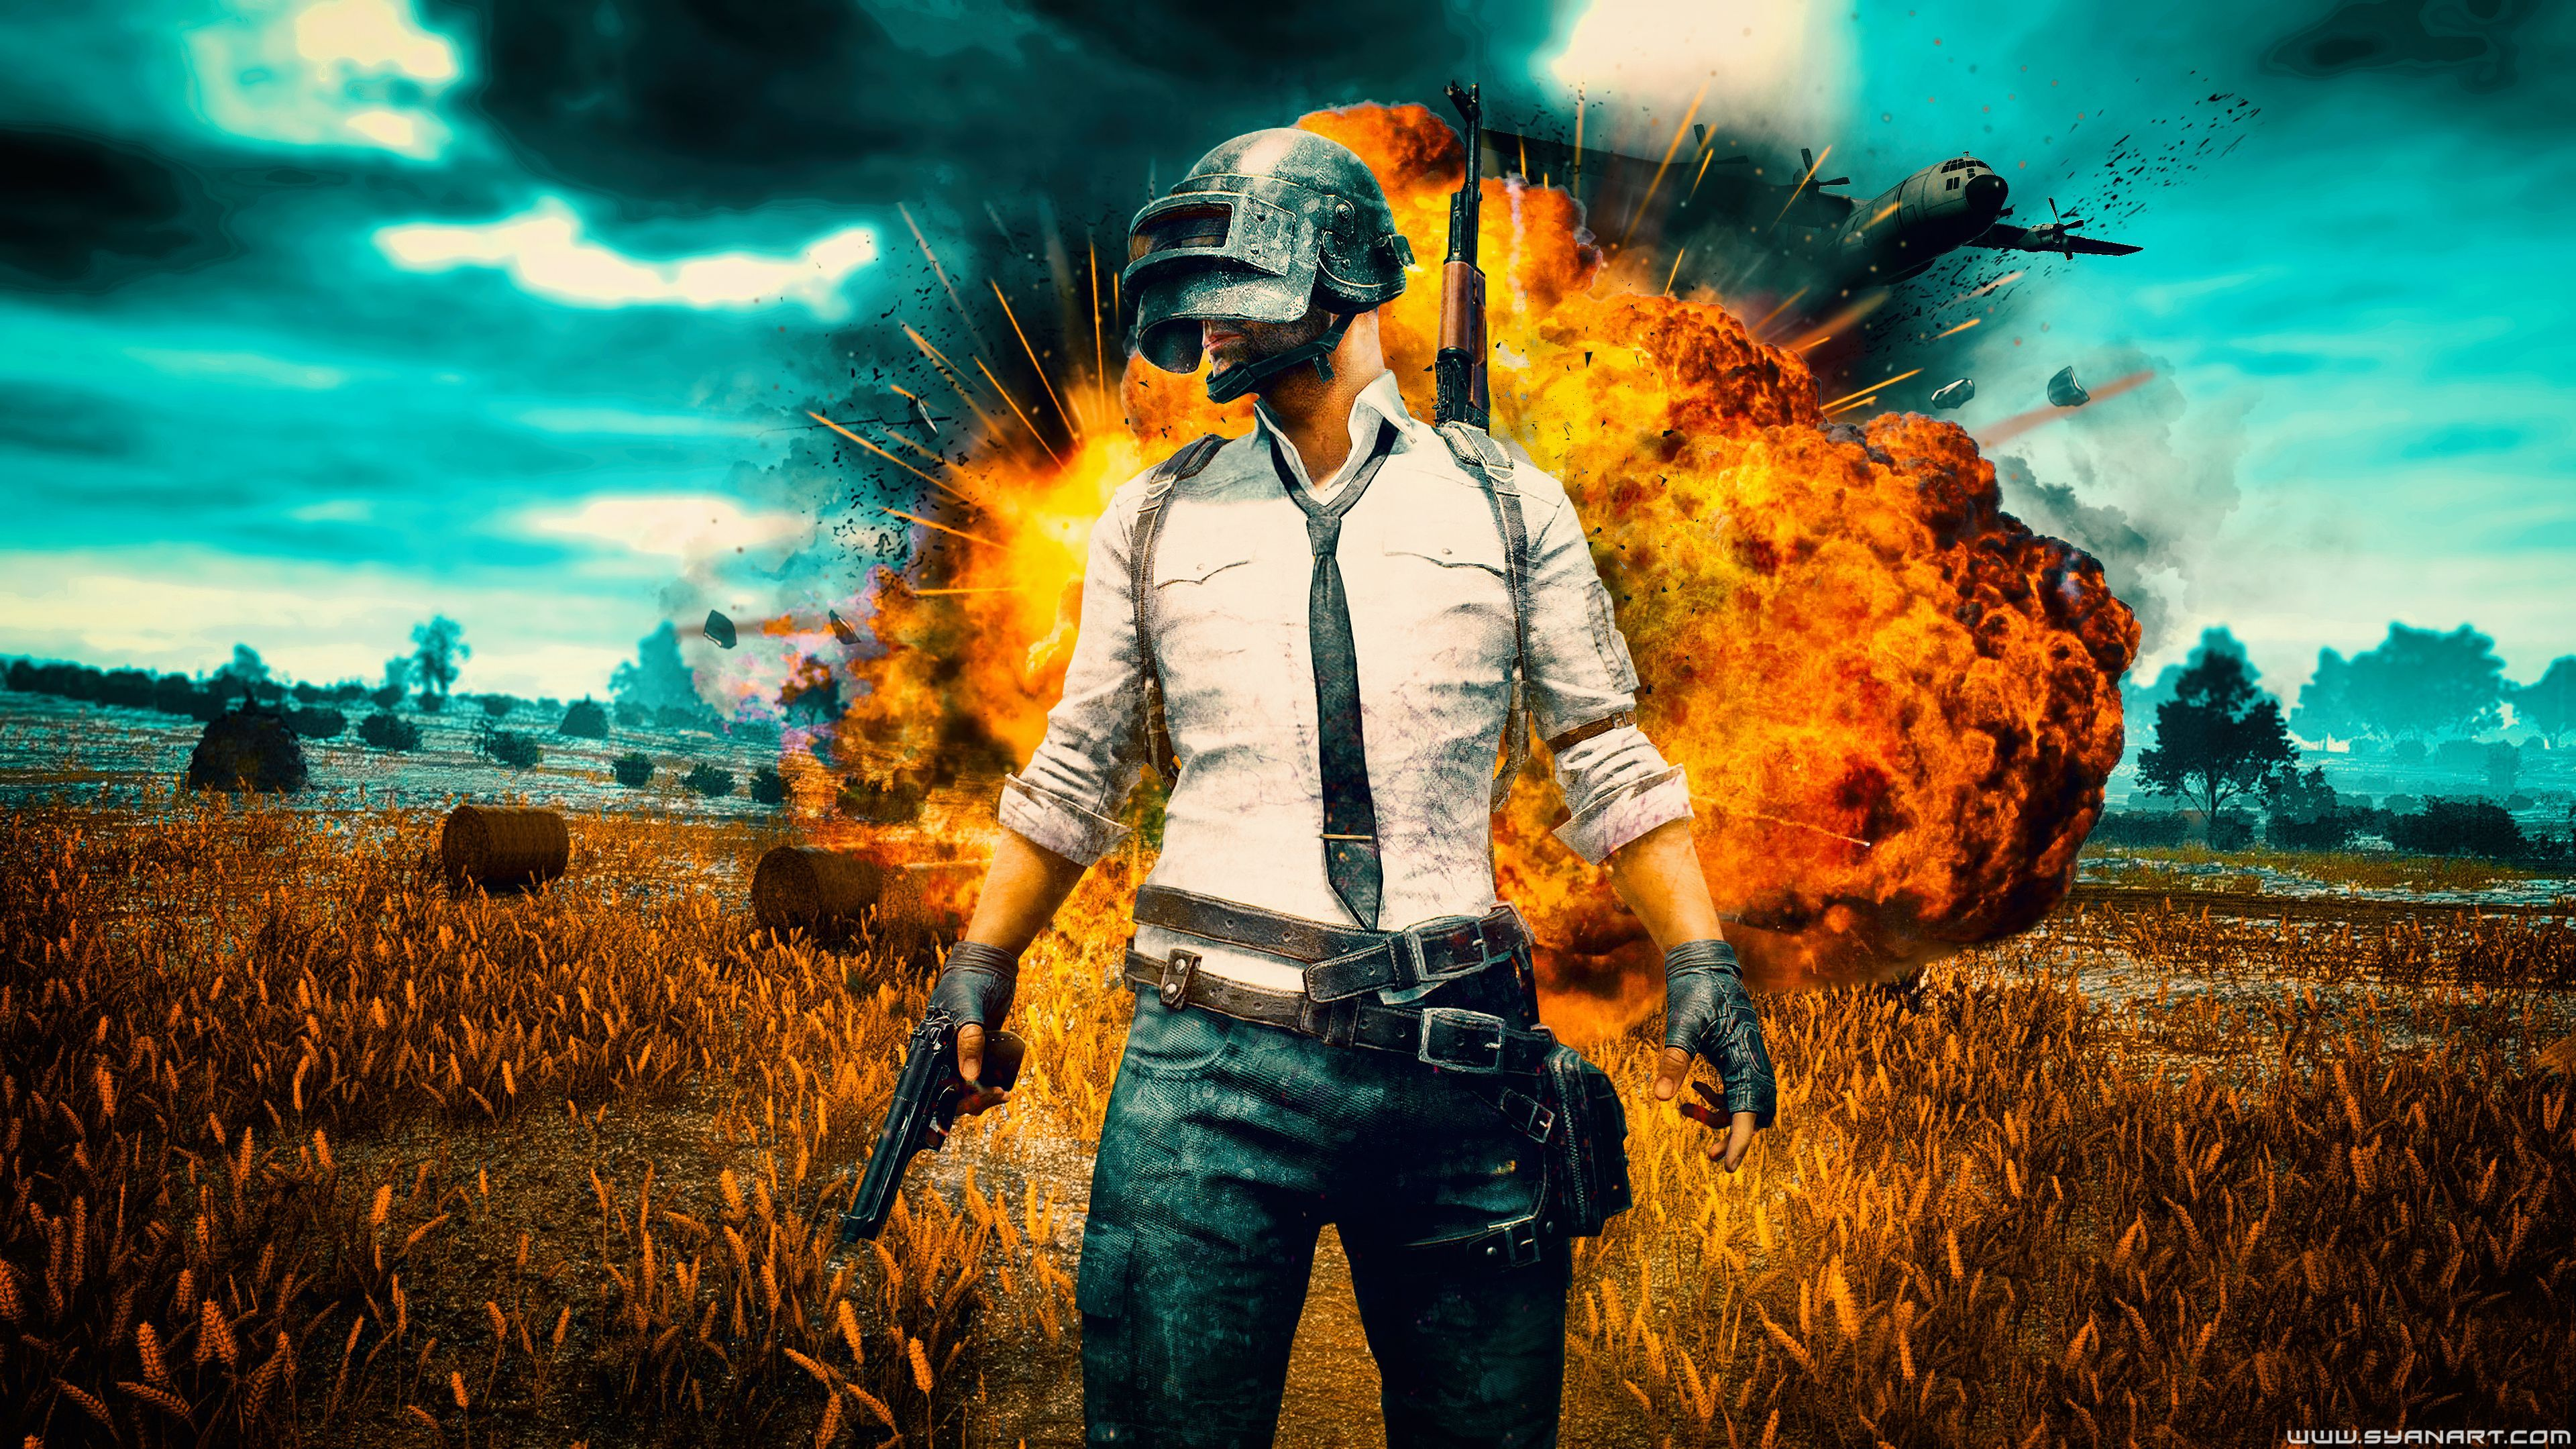 Pubg 4k Wallpapers Top Free Pubg 4k Backgrounds Wallpaperaccess